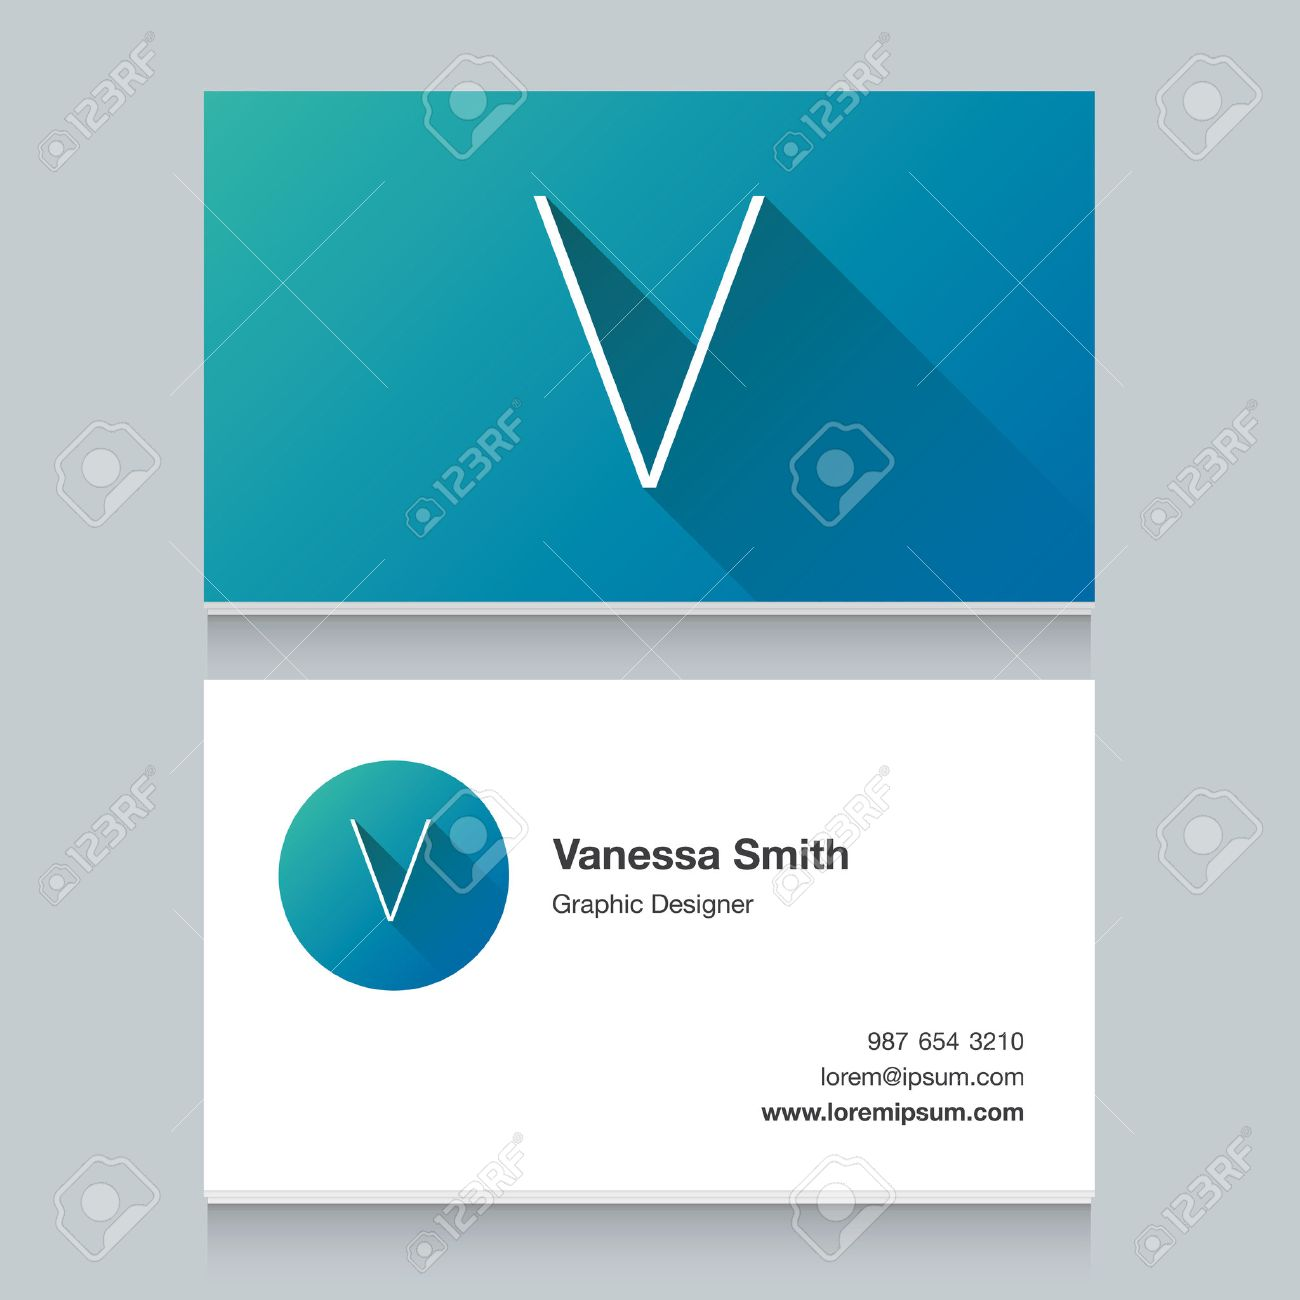 Comfortable 1 Circle Template Thin 10 Best Resumes Clean 10 Hour Schedule Templates 10 Steps To Creating An Effective Resume Youthful 10 Words Not To Put On Your Resume Dark100 Dollar Bill Template Logo Alphabet Letter \